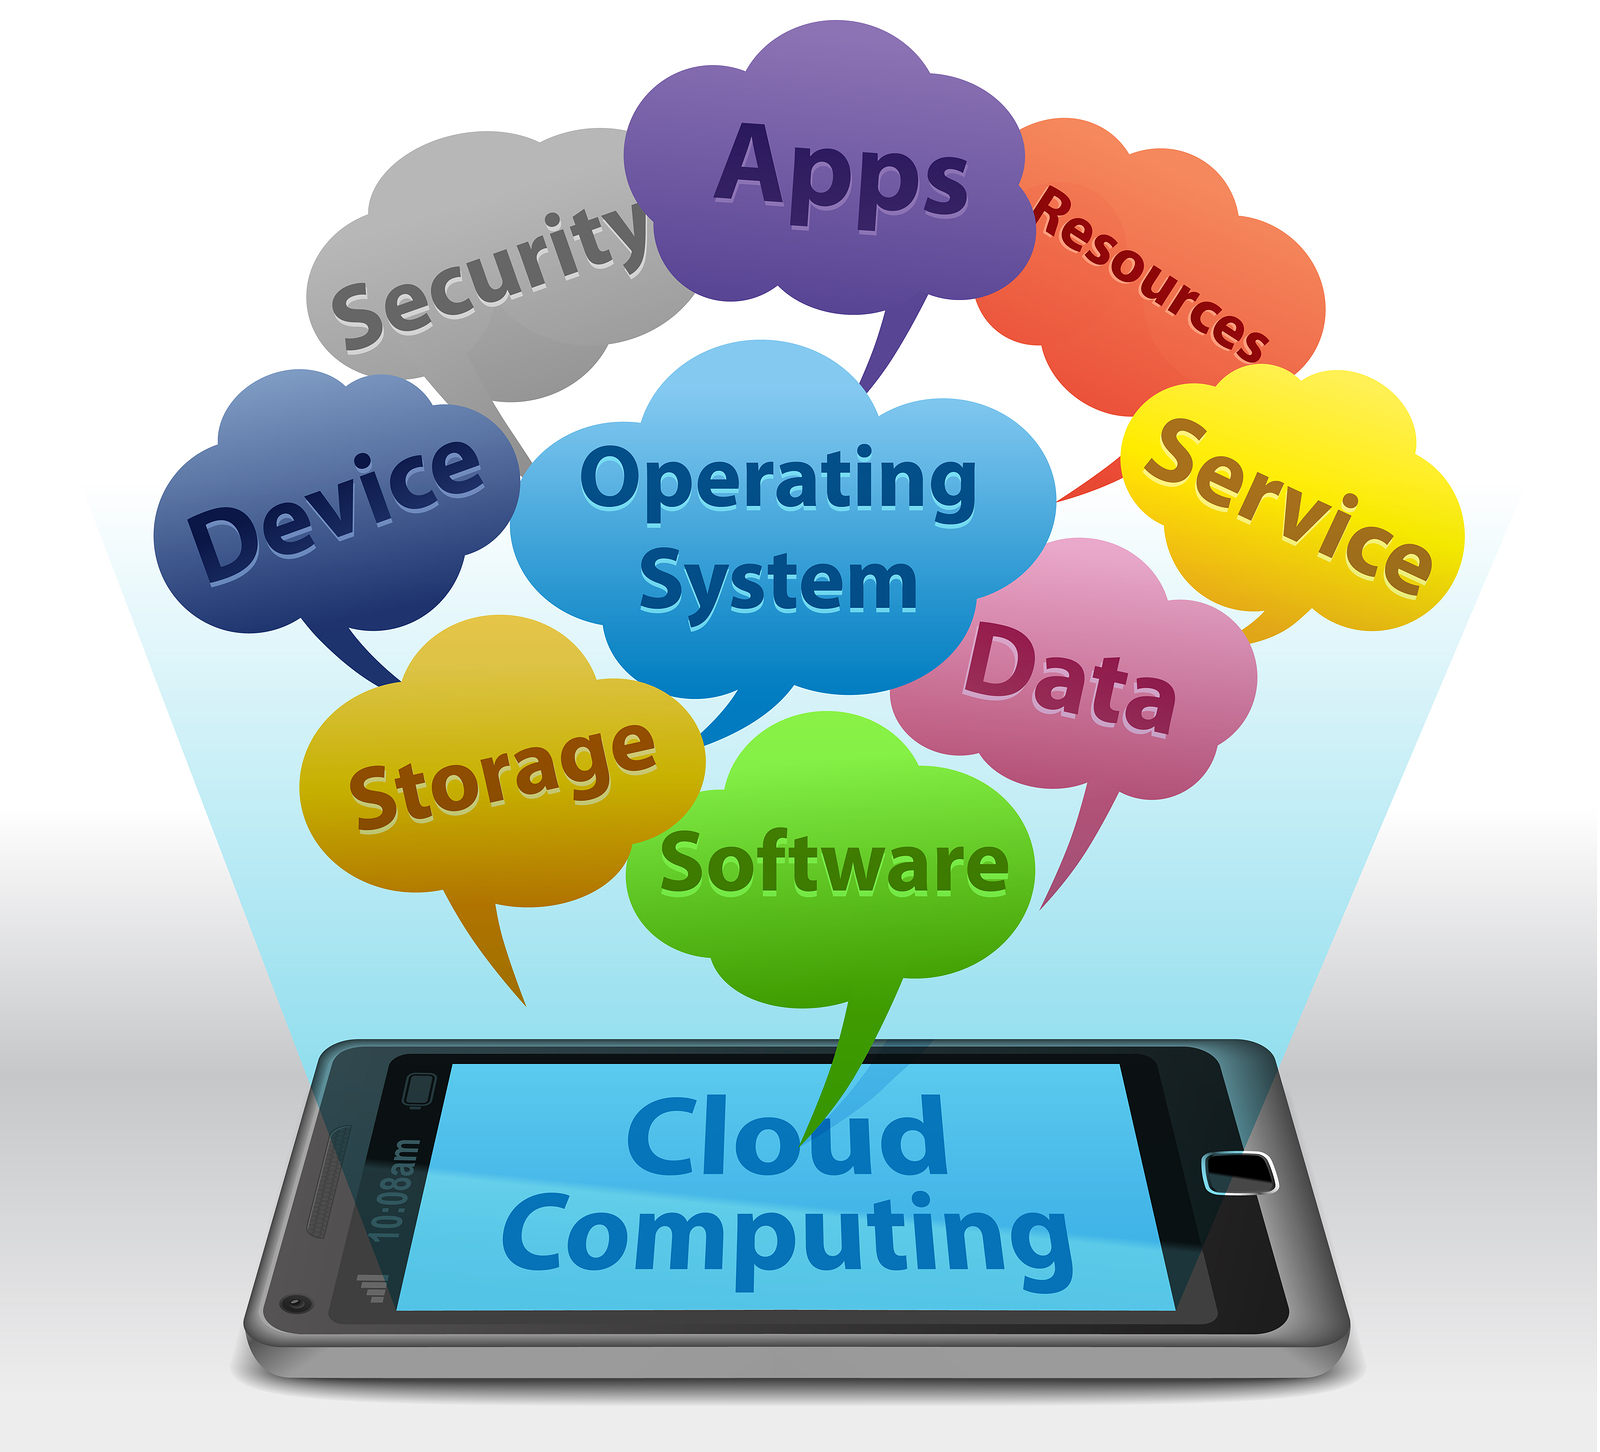 Cloud Services That Even Small Business Can Afford - Image 1